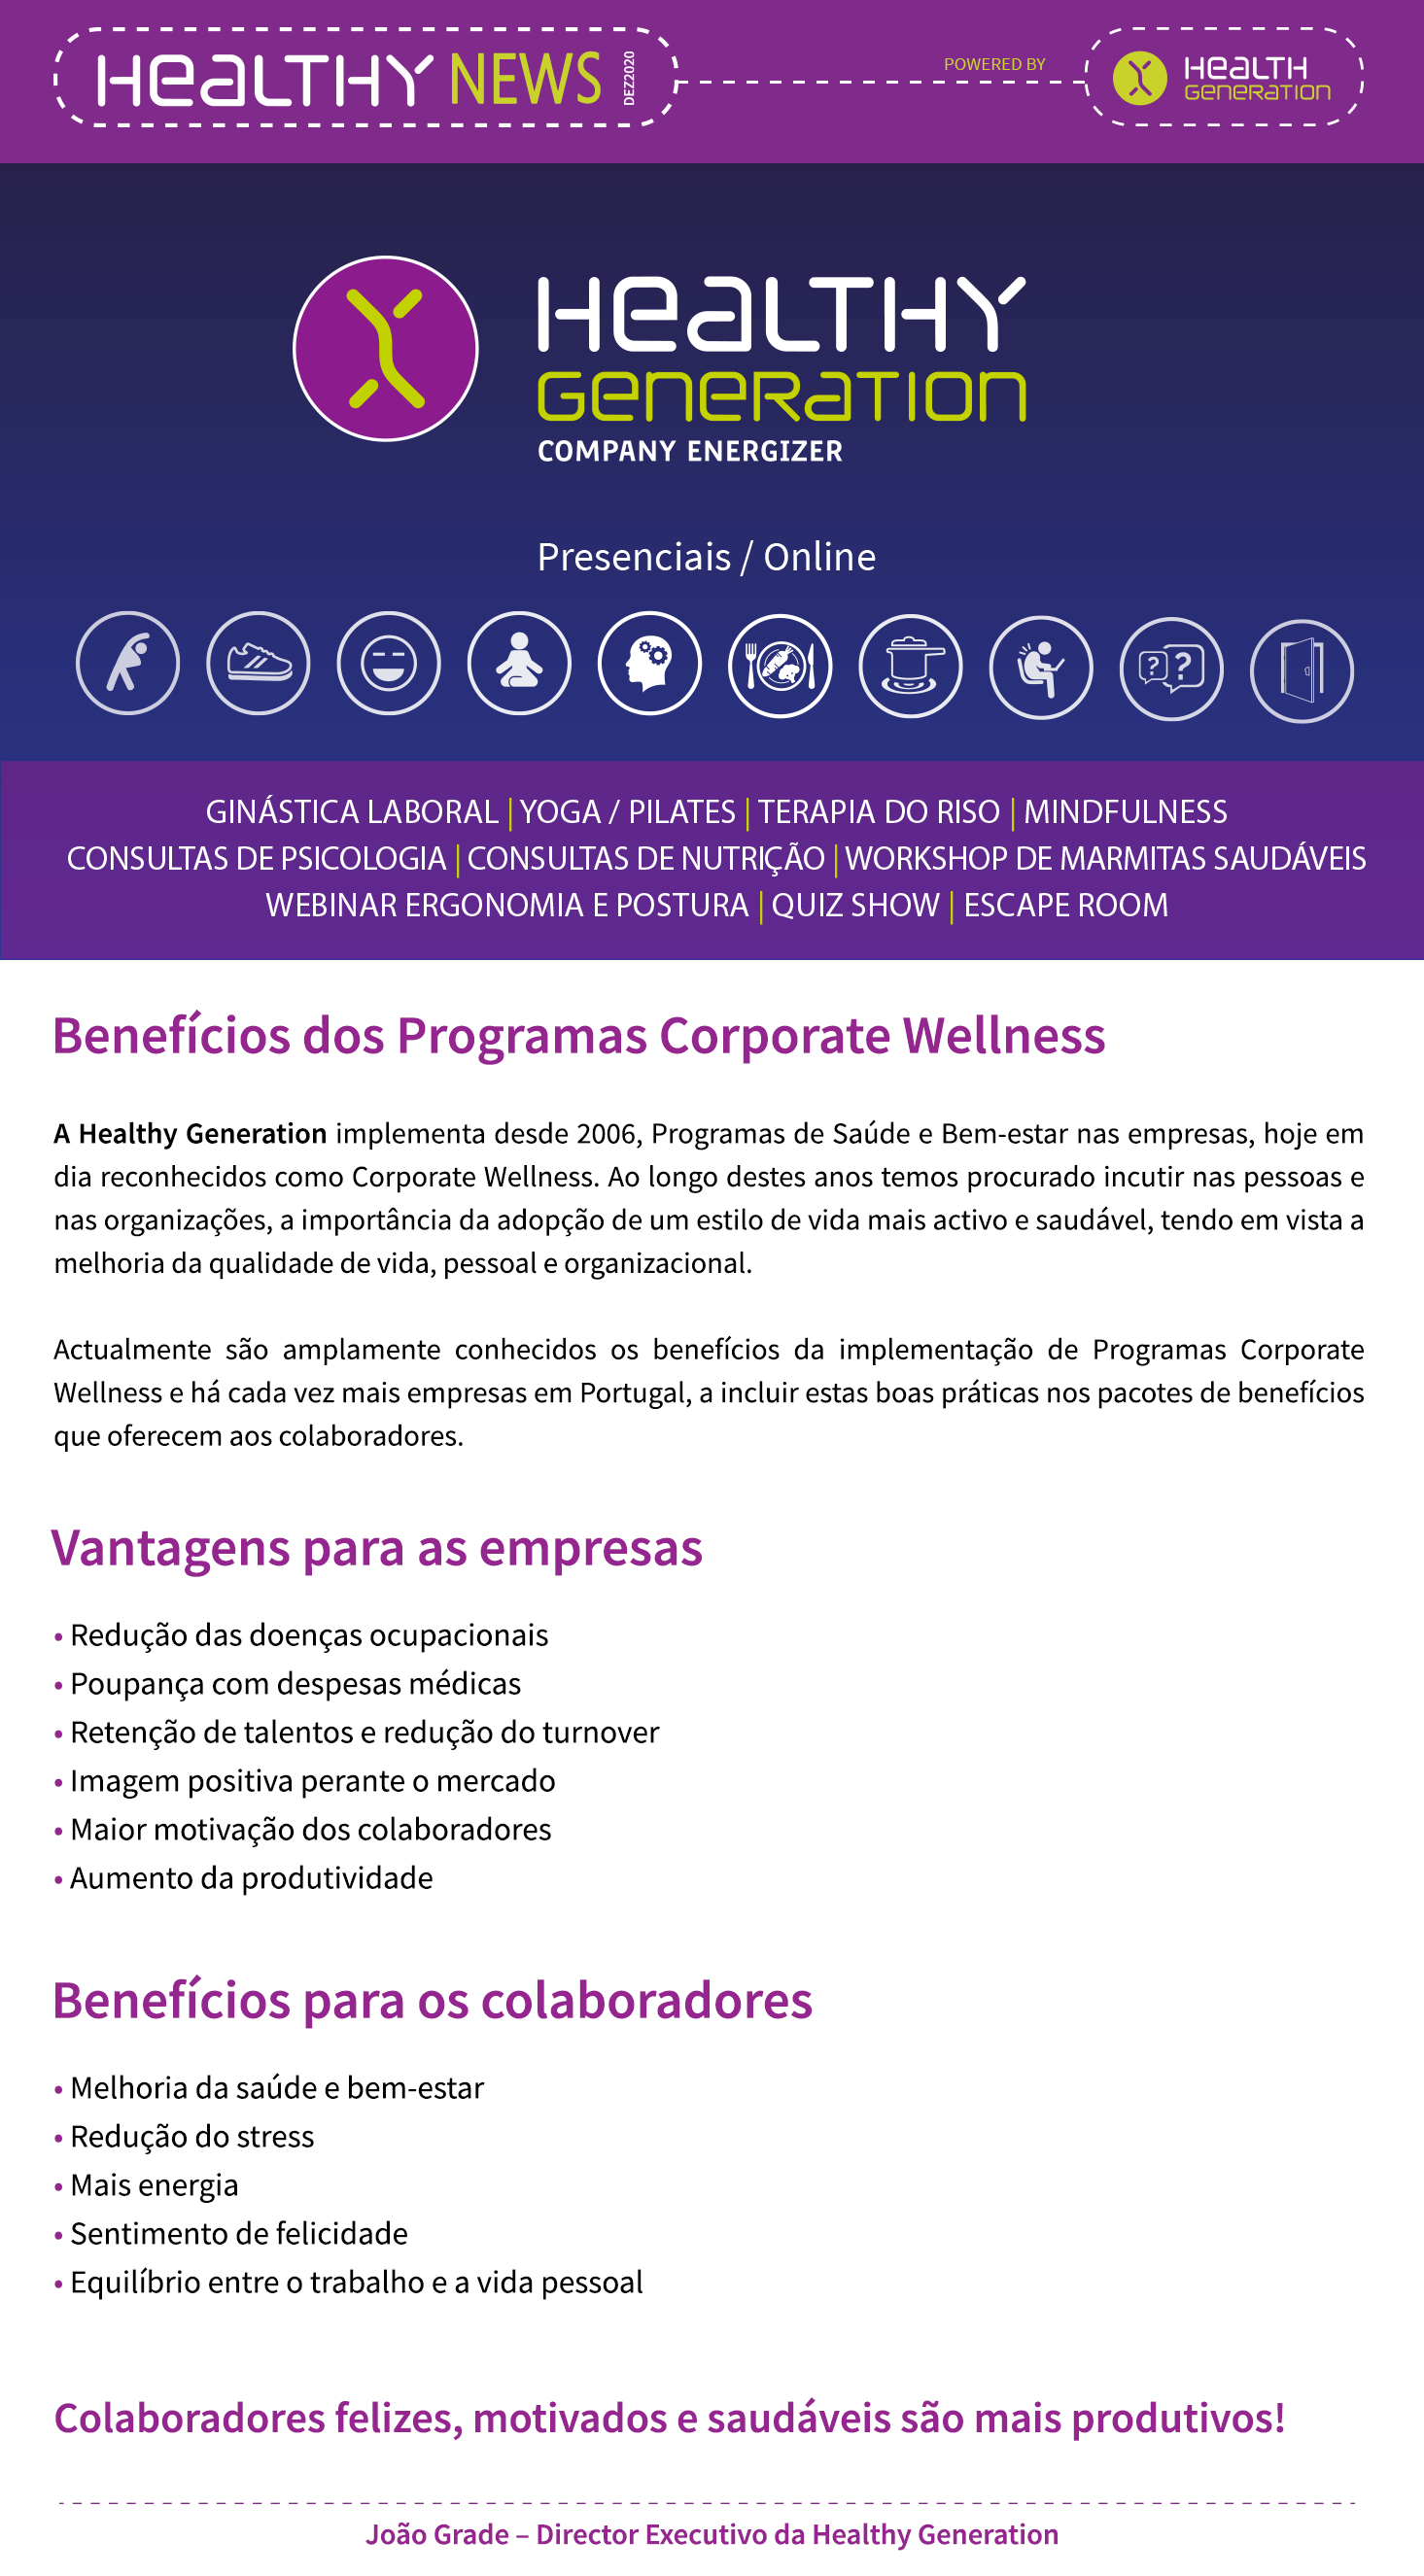 News Site Benefícios Programas Corporate Wellness.jpg